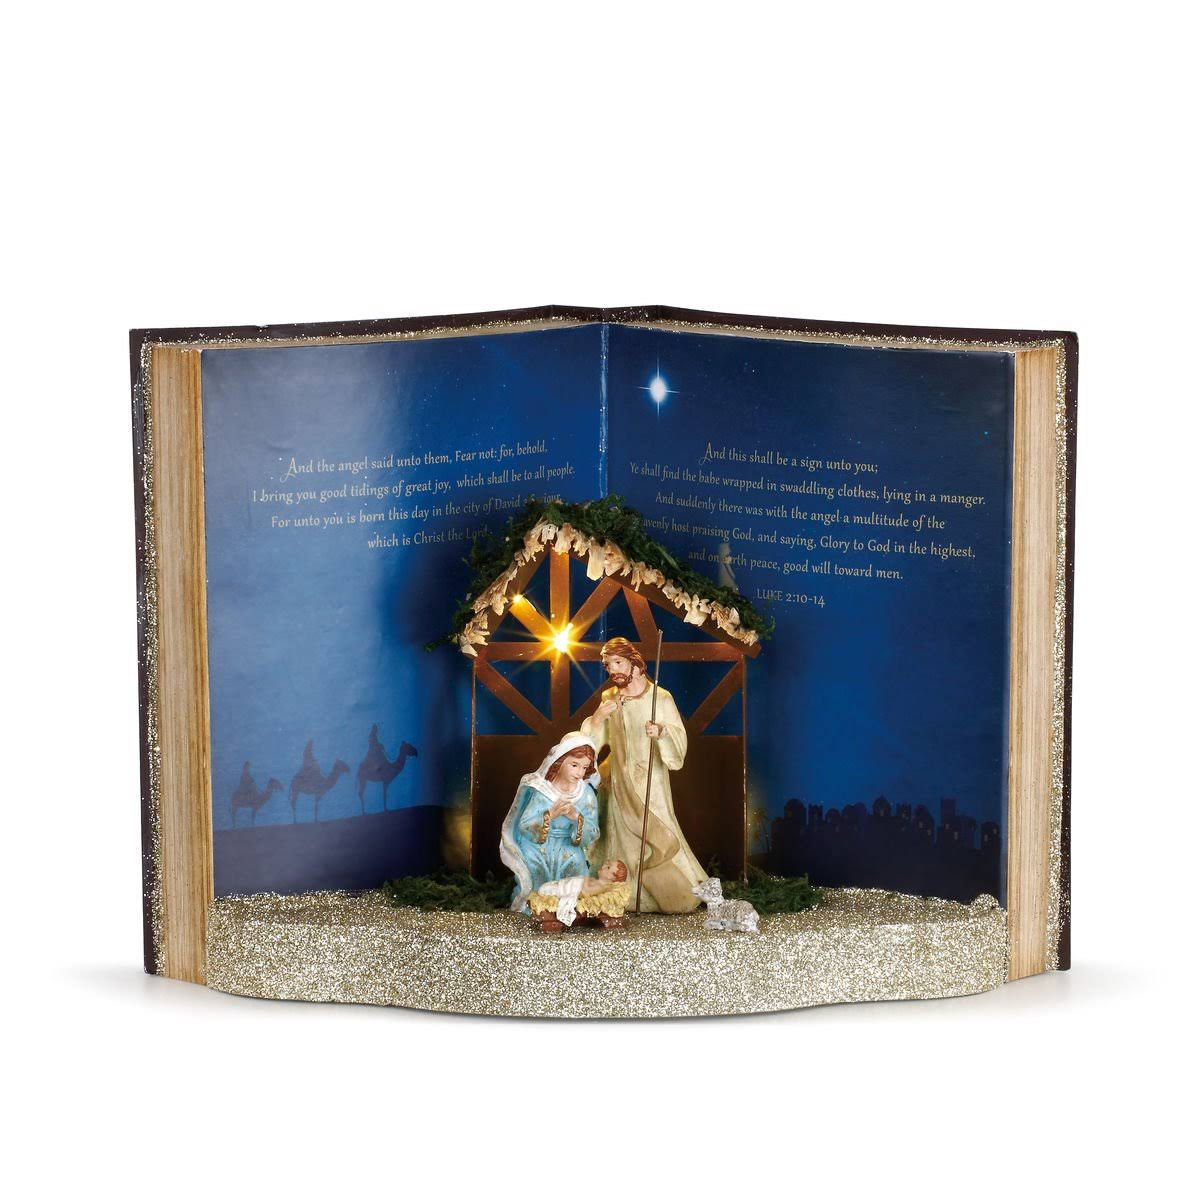 Demdaco Lit Storybook Nativity Scene Figure